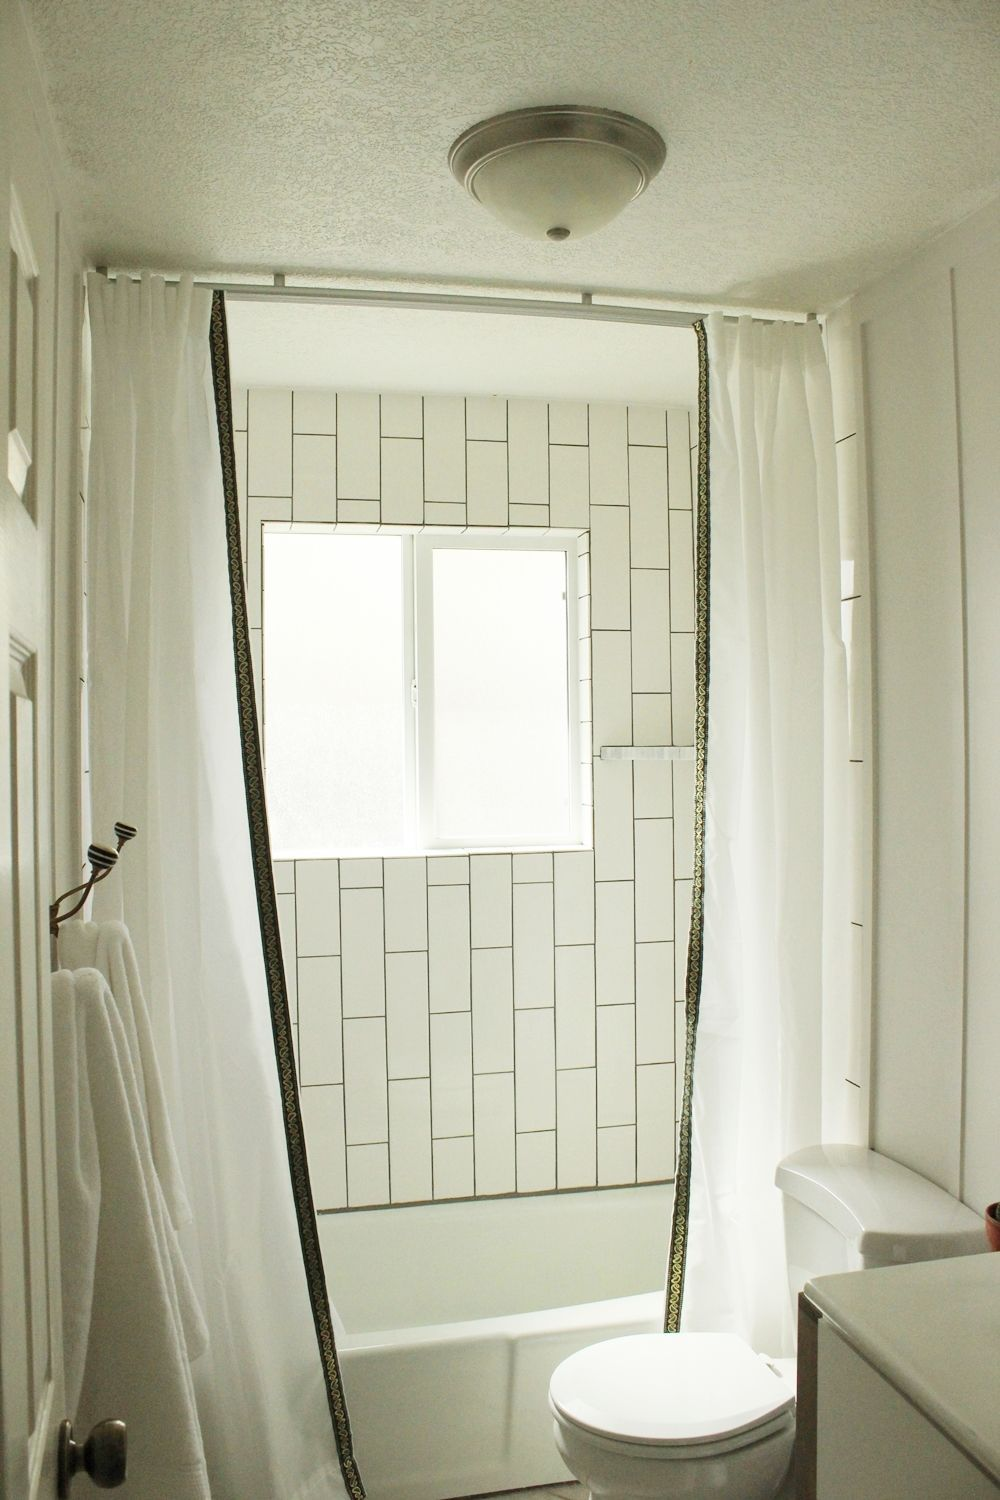 Glass Shower Curtains How To Install A Ceiling Mounted Shower Curtain Diy Projects